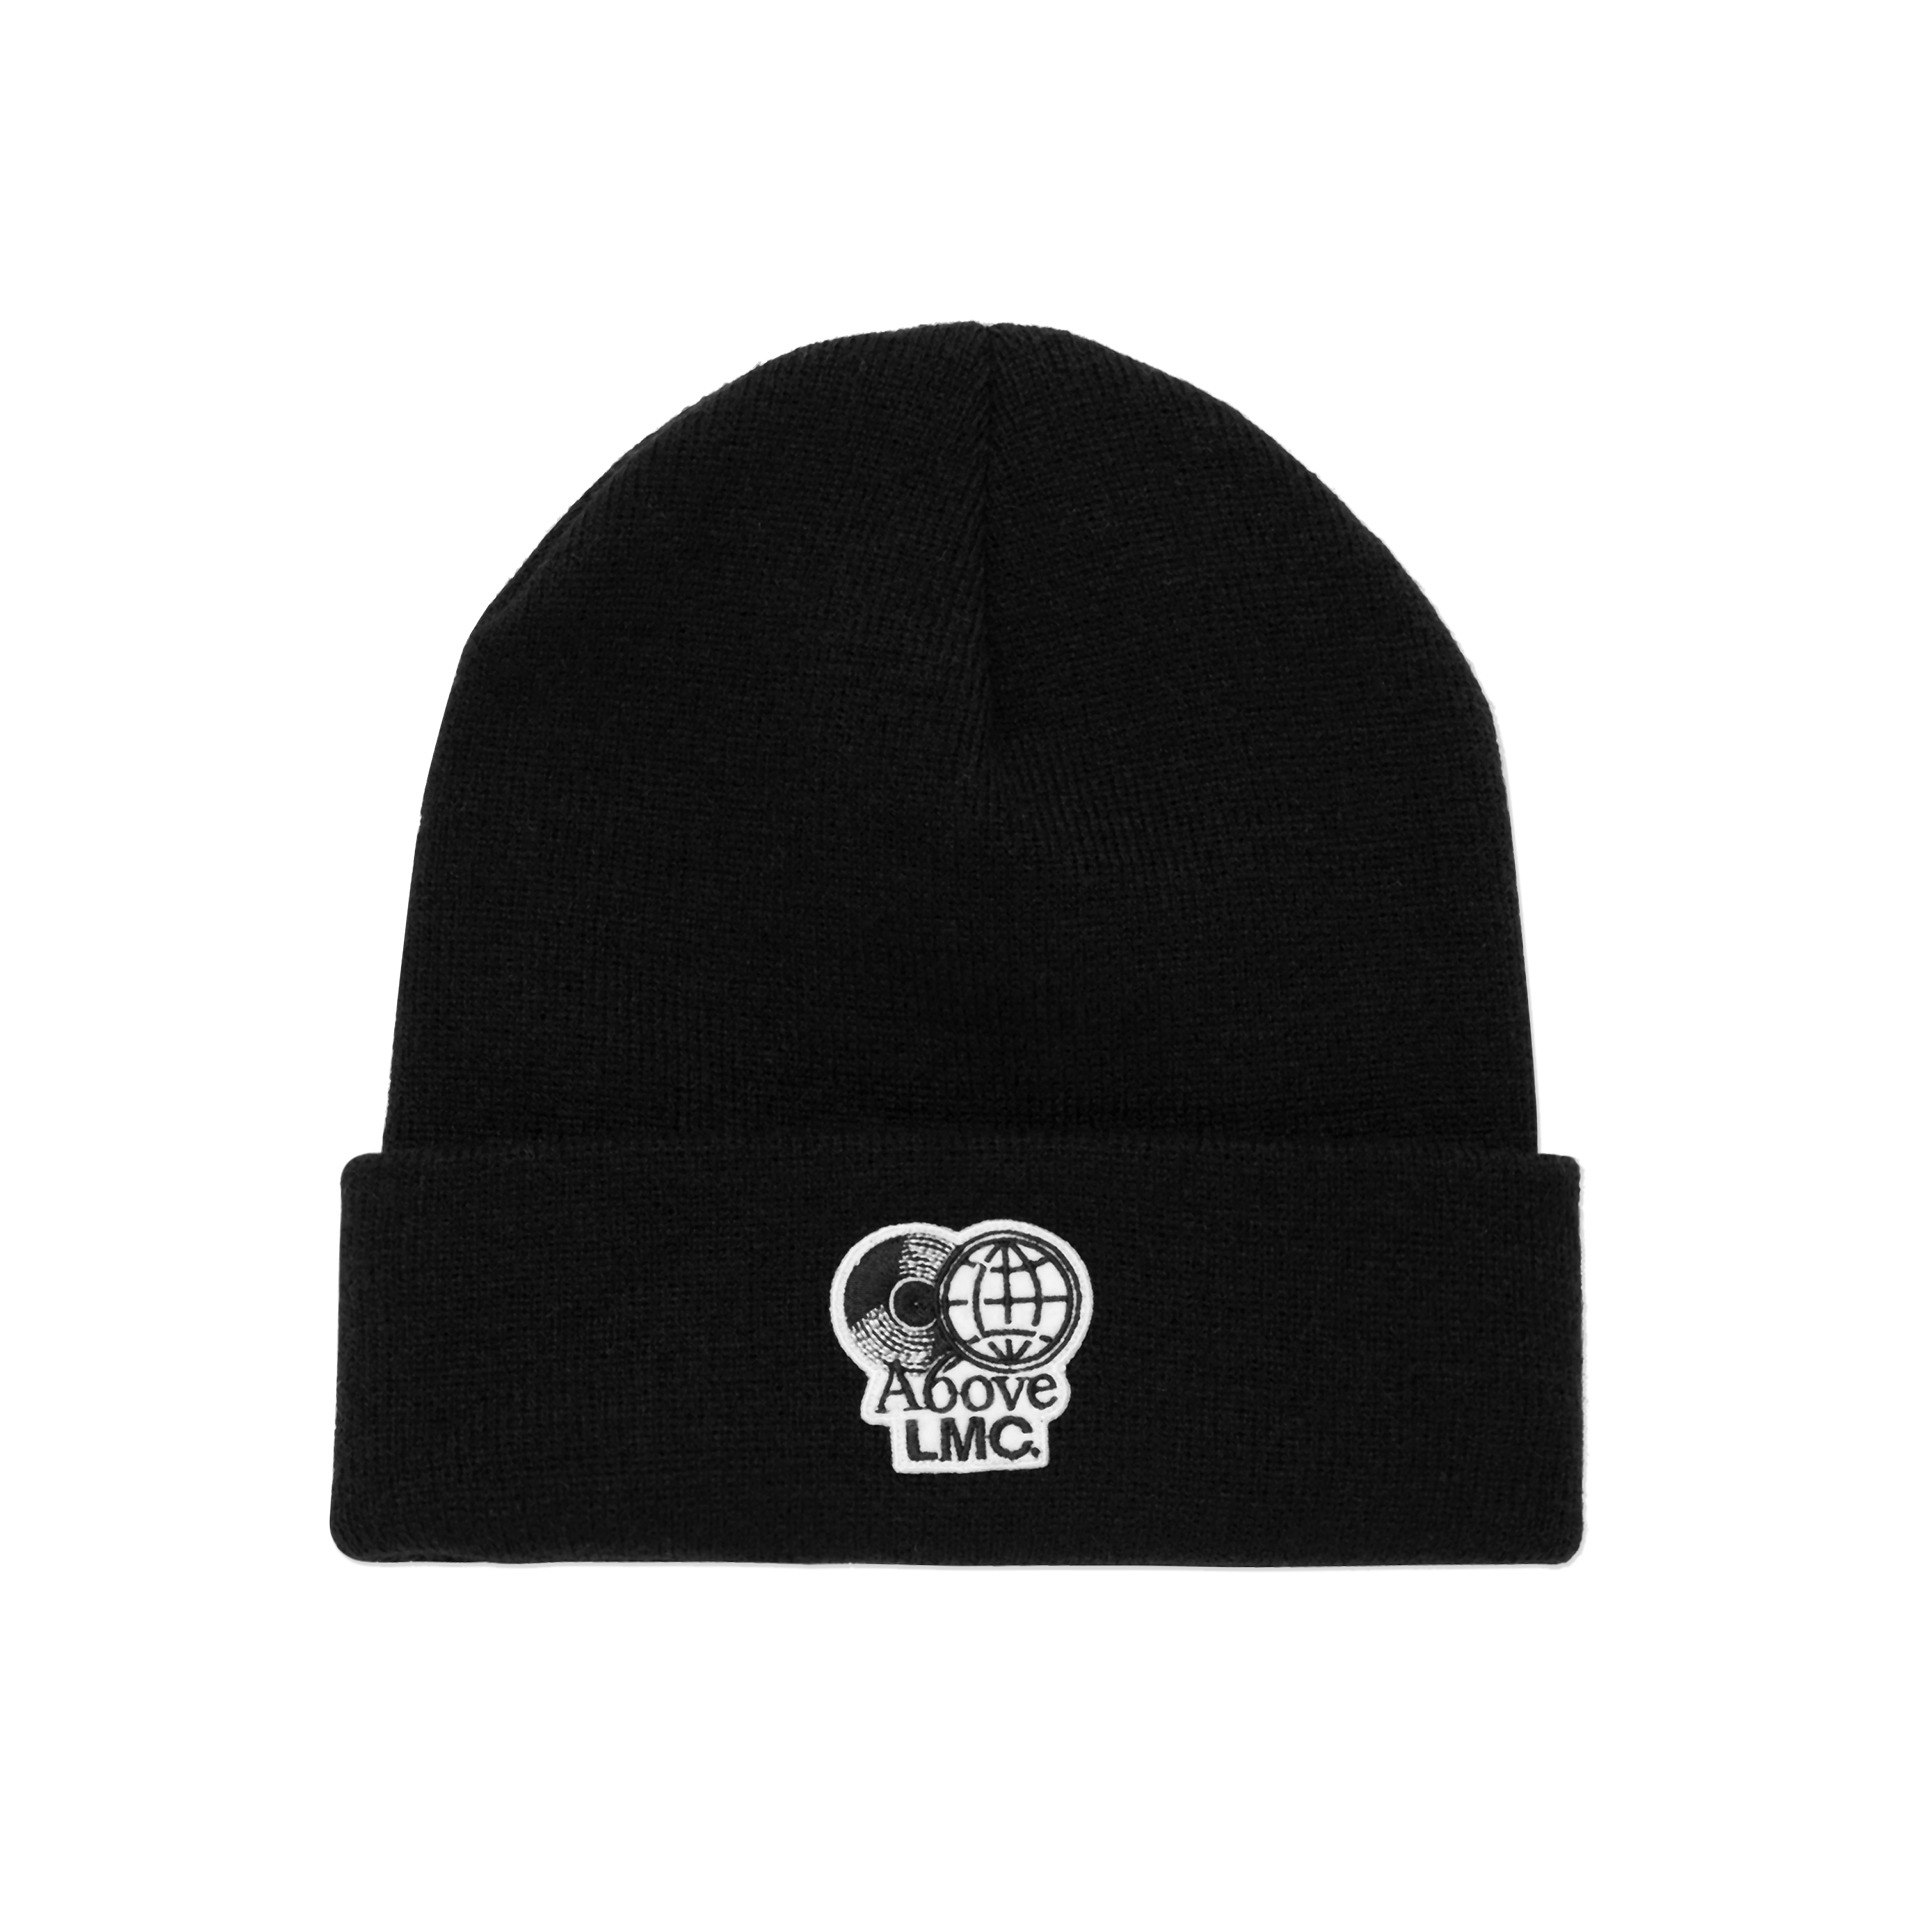 layer-LMC X A6OVE FRIENDSHIP MIX BEANIE black♡韓國男裝飾品